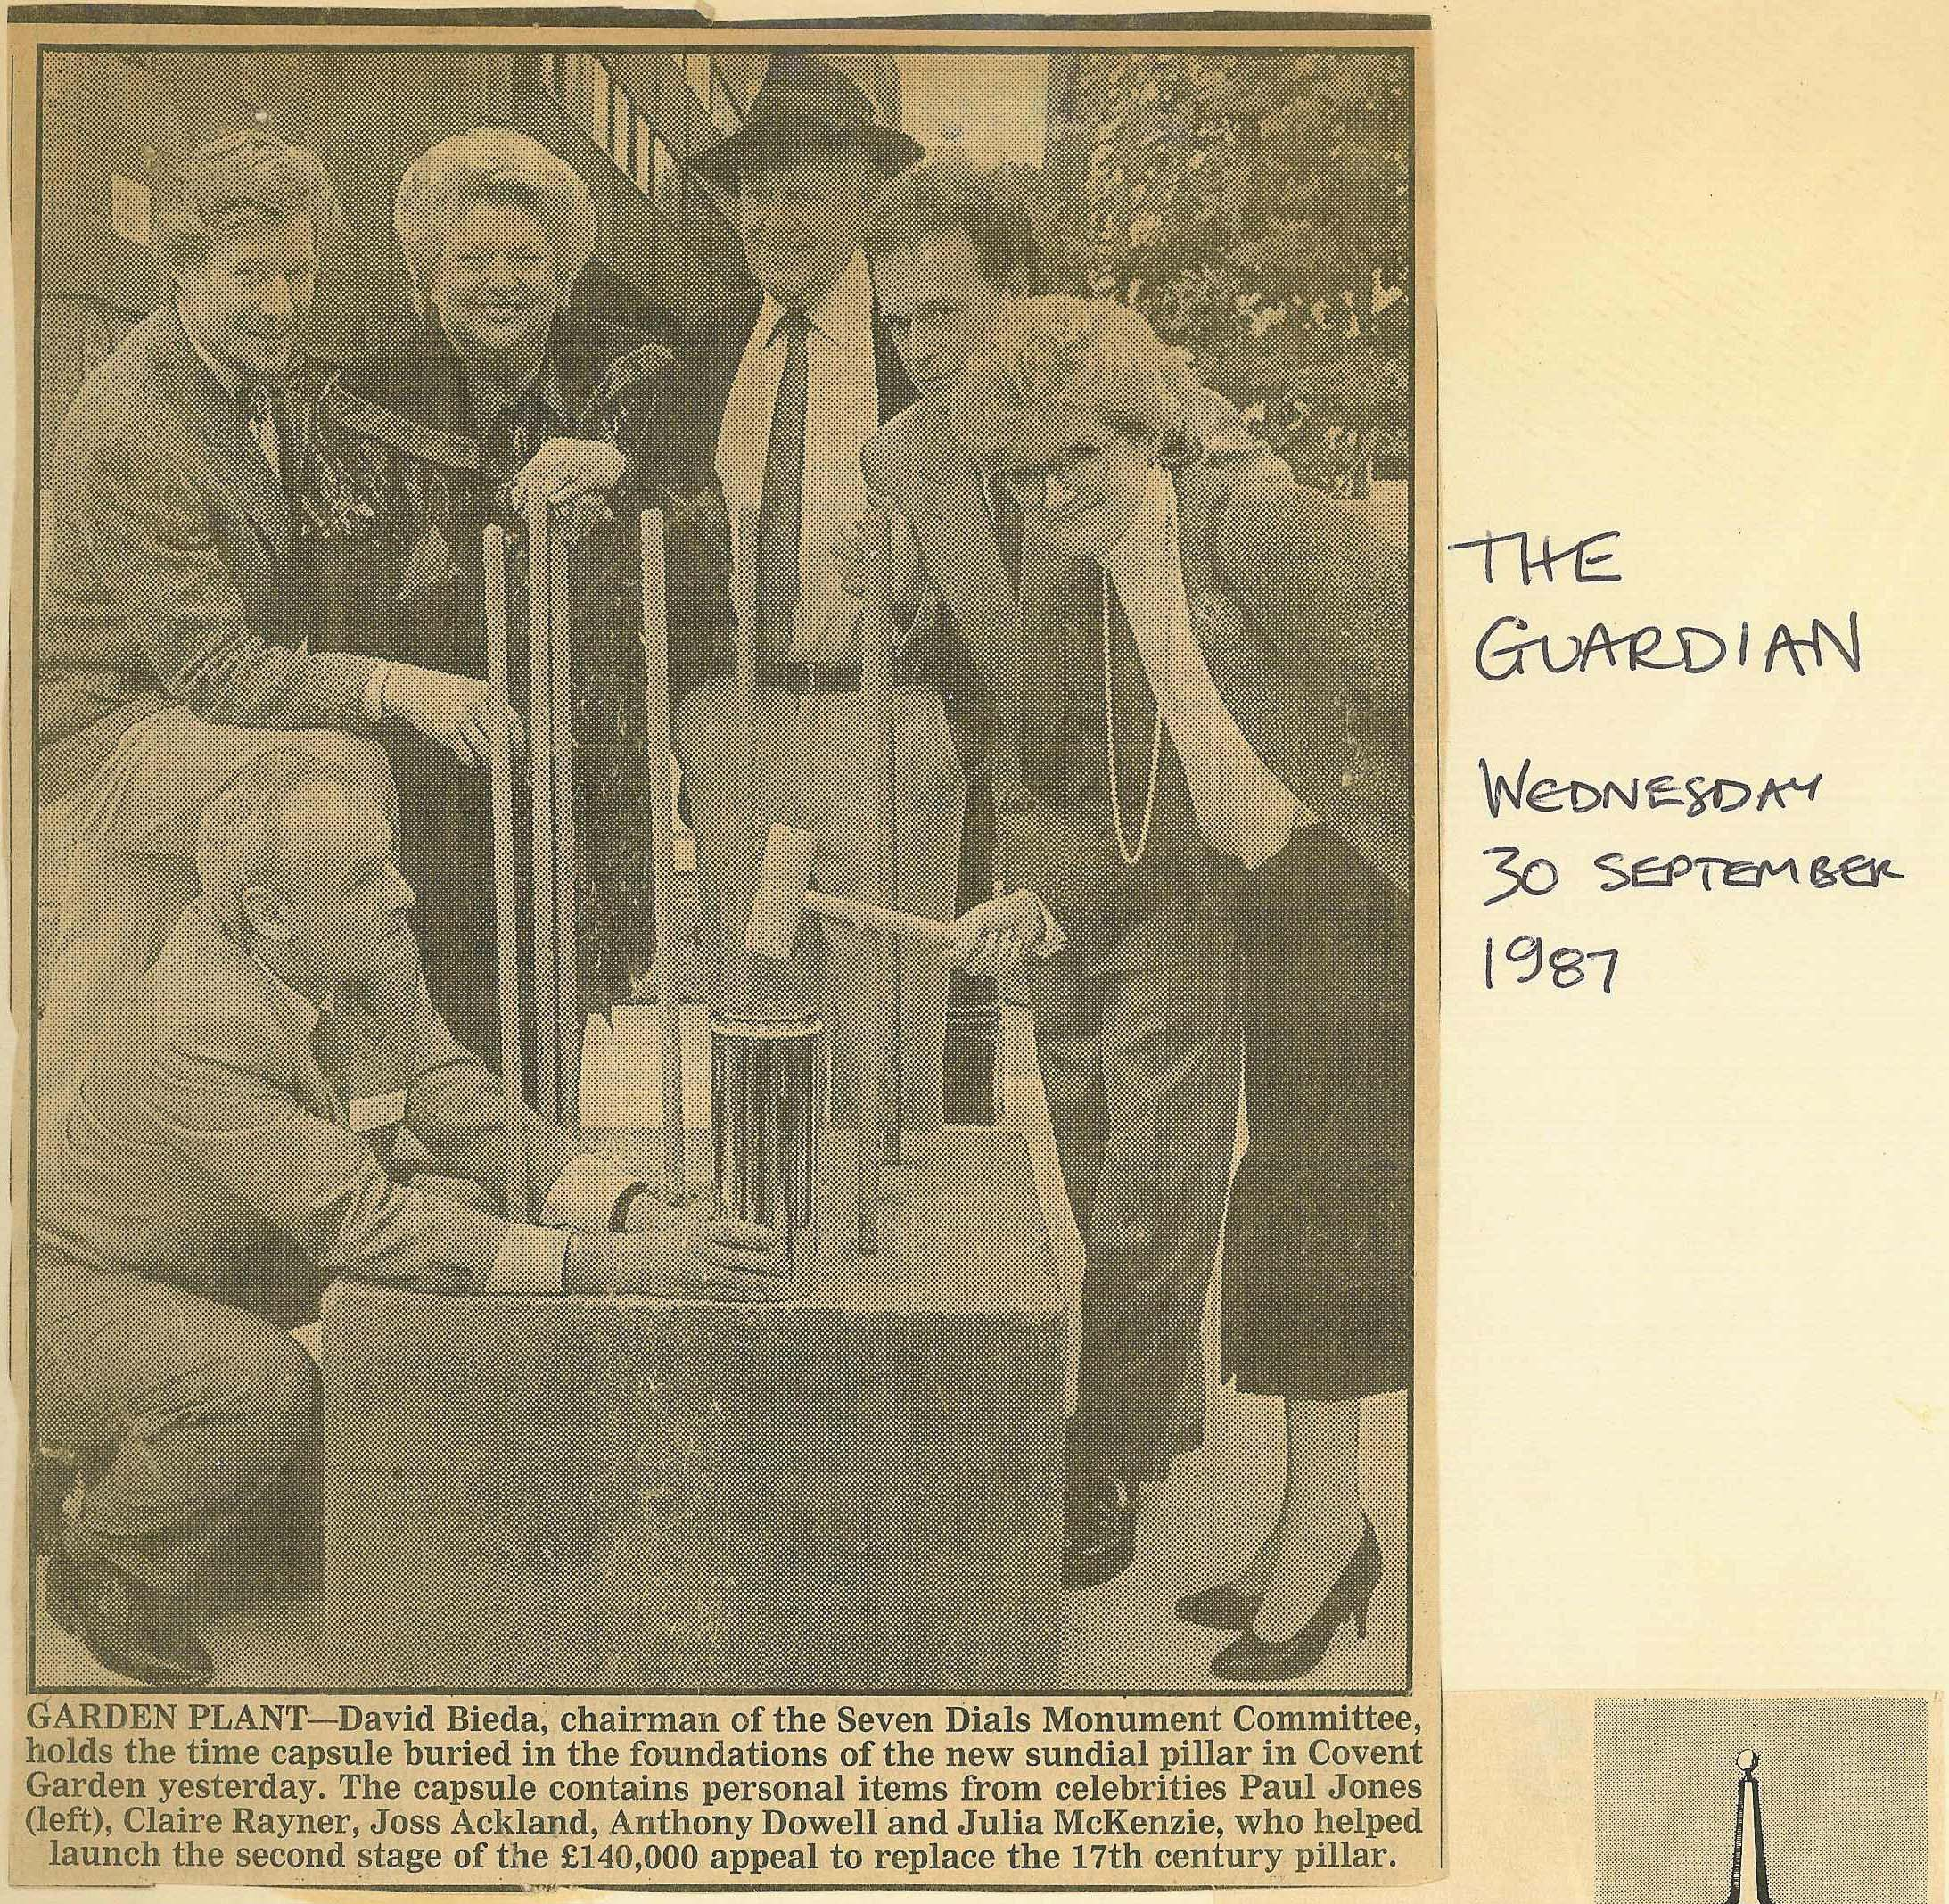 30 Sept. 1987 – Guardian: Garden Plant - planting the time capsule containing personal items.